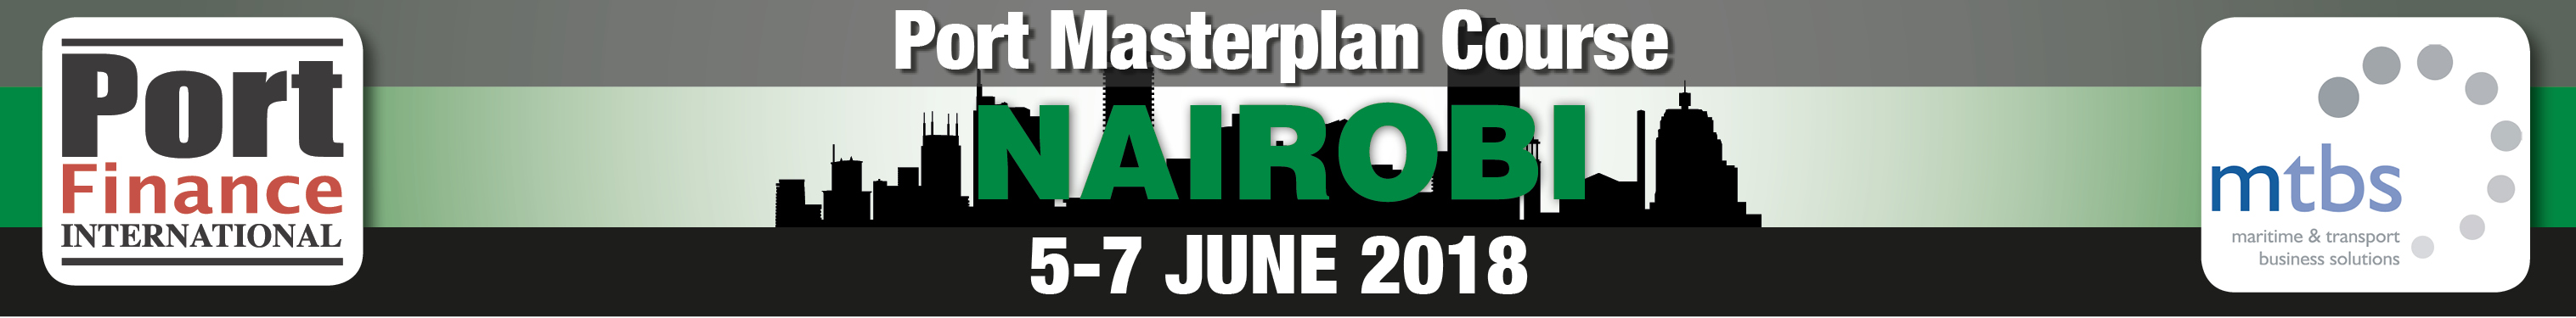 Port Masterplan Course (Nairobi) 2018